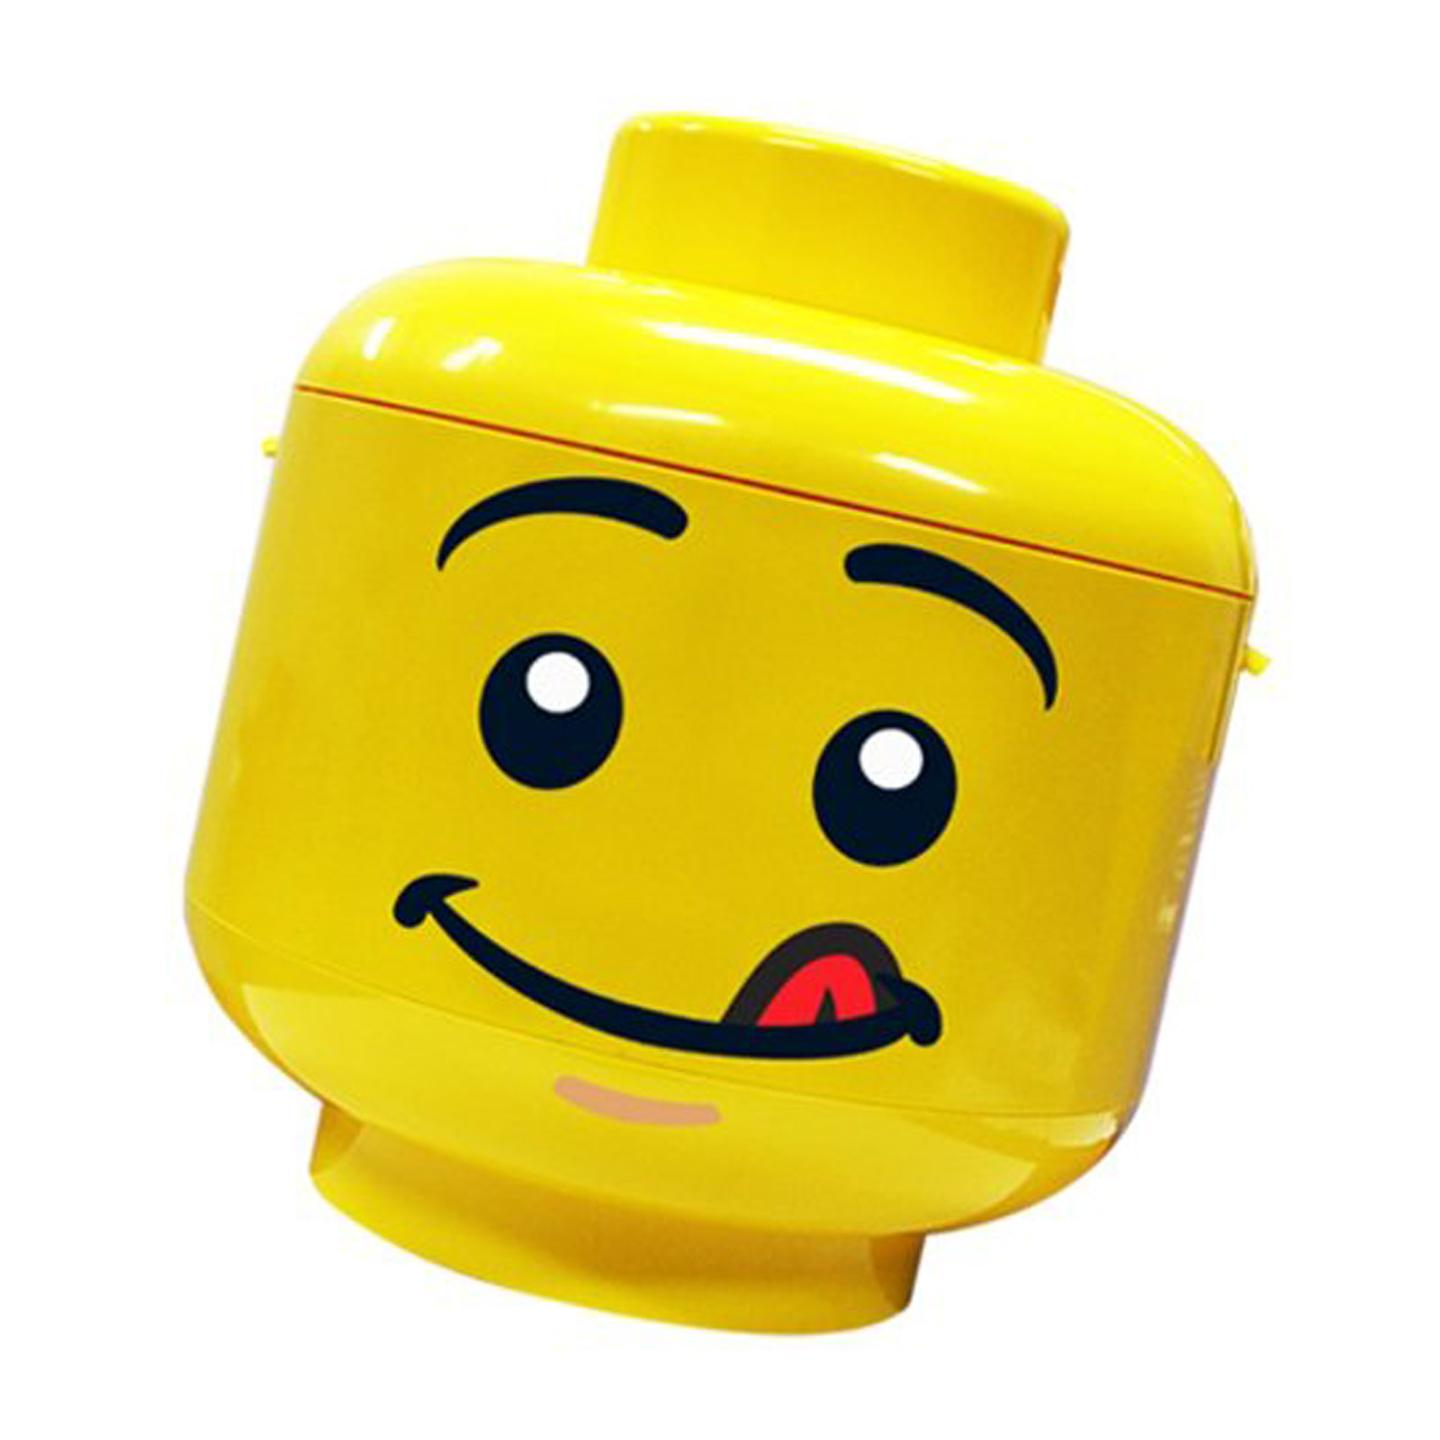 Lego 39 sort store 39 storage head cheeky x large new for Lego minifigure head template